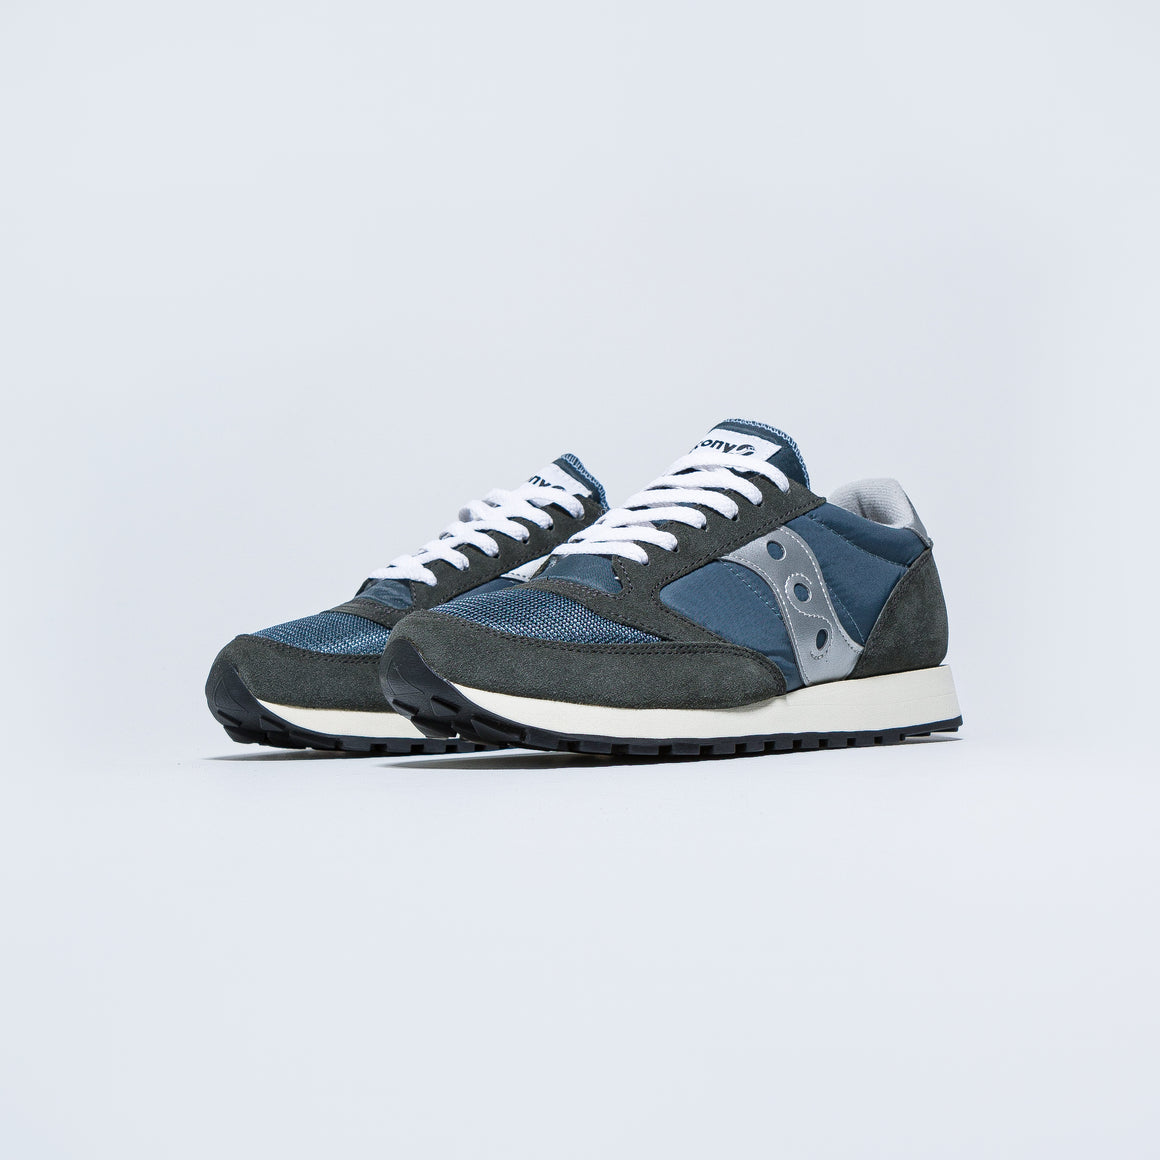 Saucony - Jazz Original Vintage - Blue/Navy - Up There